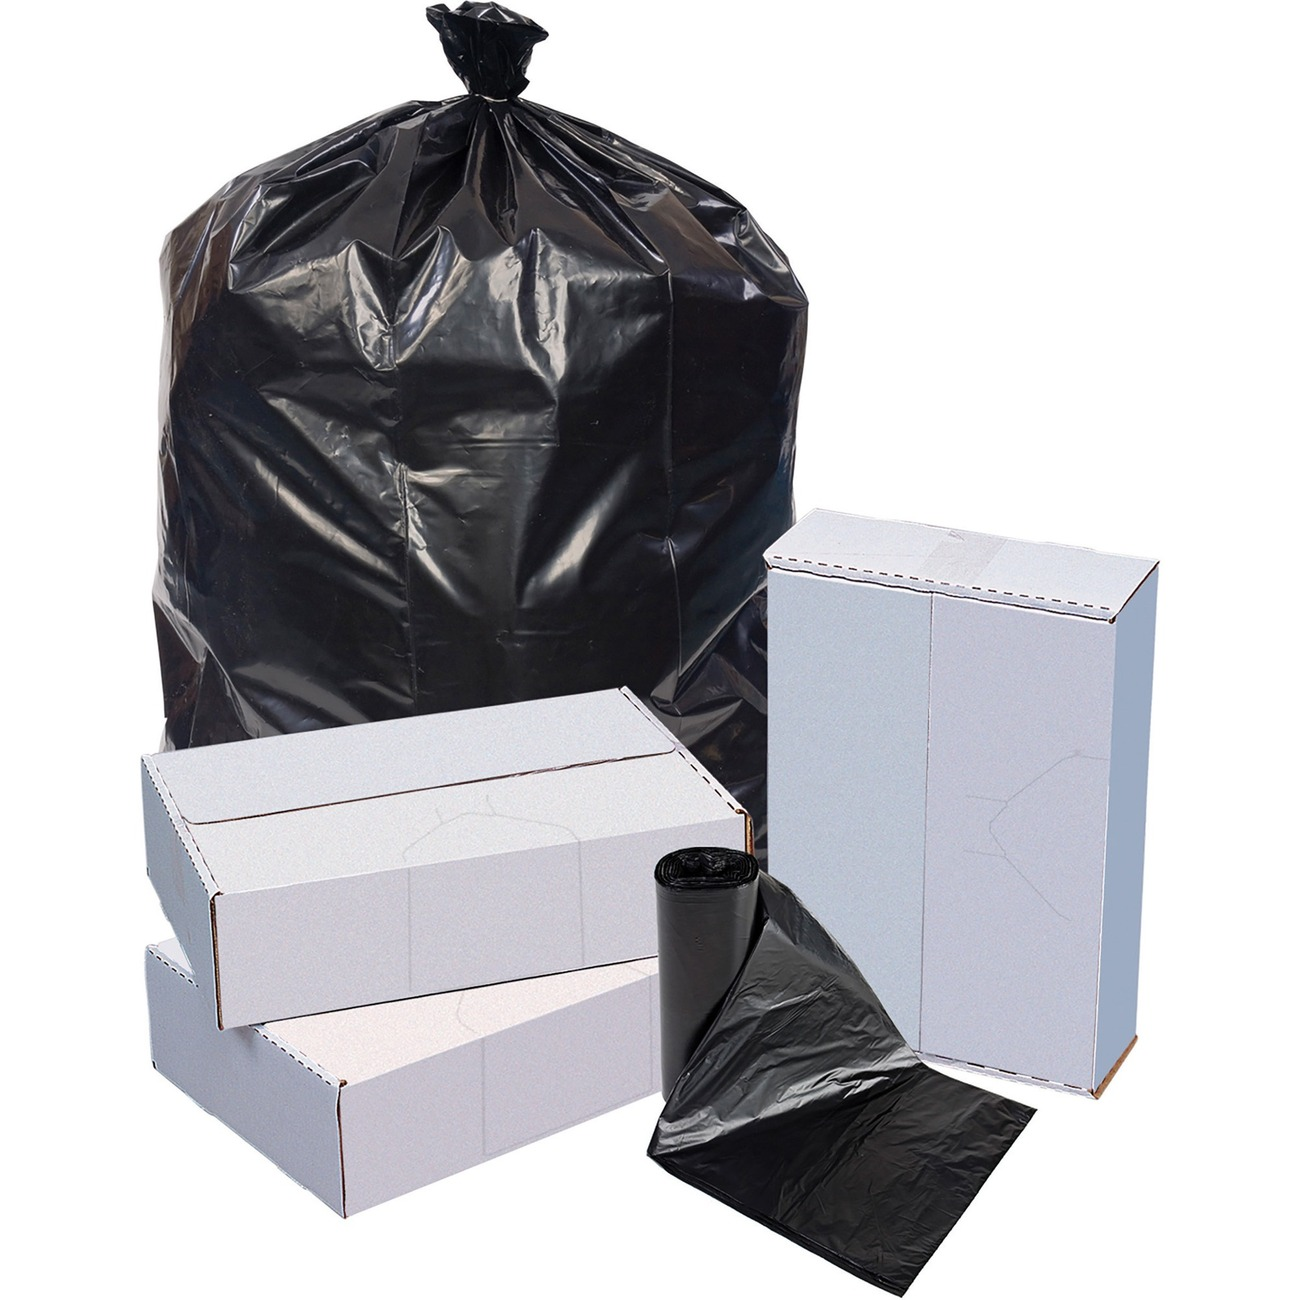 Trash Duty For Students With Special >> Spzld385815 Special Buy Heavy Duty Low Density Trash Bags Office